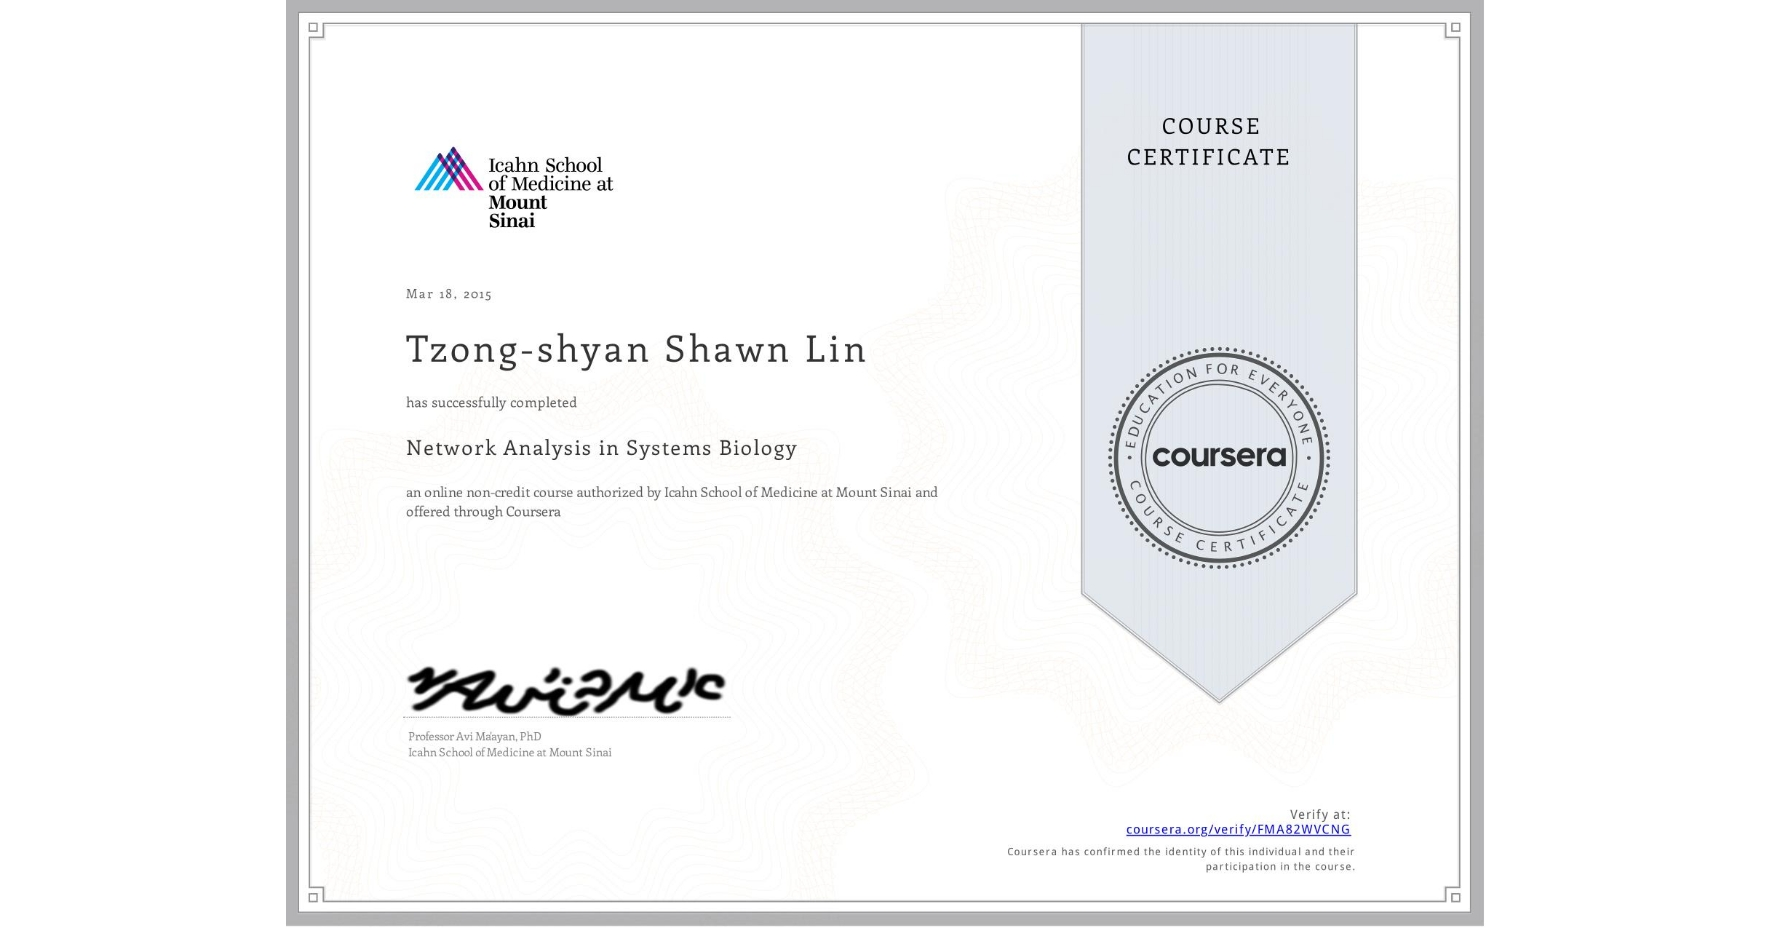 View certificate for Tzong-shyan Shawn Lin, Network Analysis in Systems Biology, an online non-credit course authorized by Icahn School of Medicine at Mount Sinai and offered through Coursera